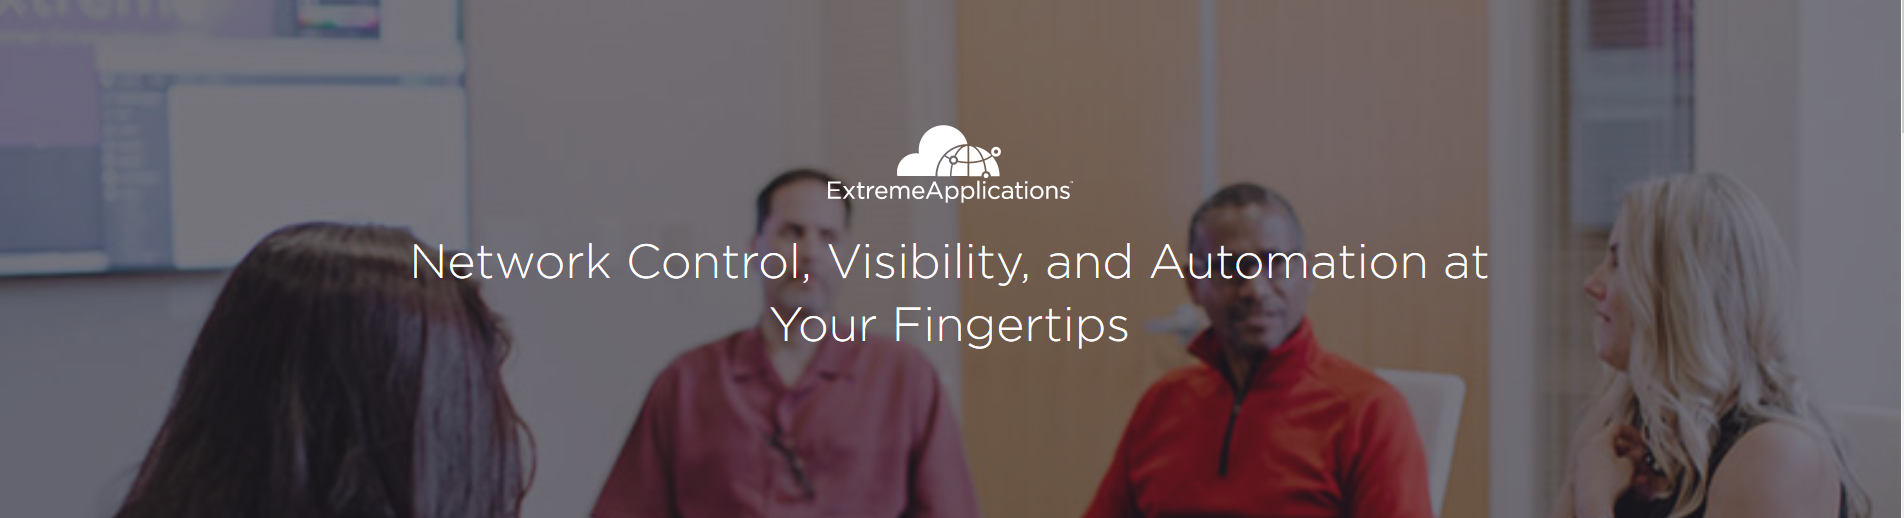 Get Insights, Visibility, and Control for Superior User Experience from the Edge to the Private Cloud